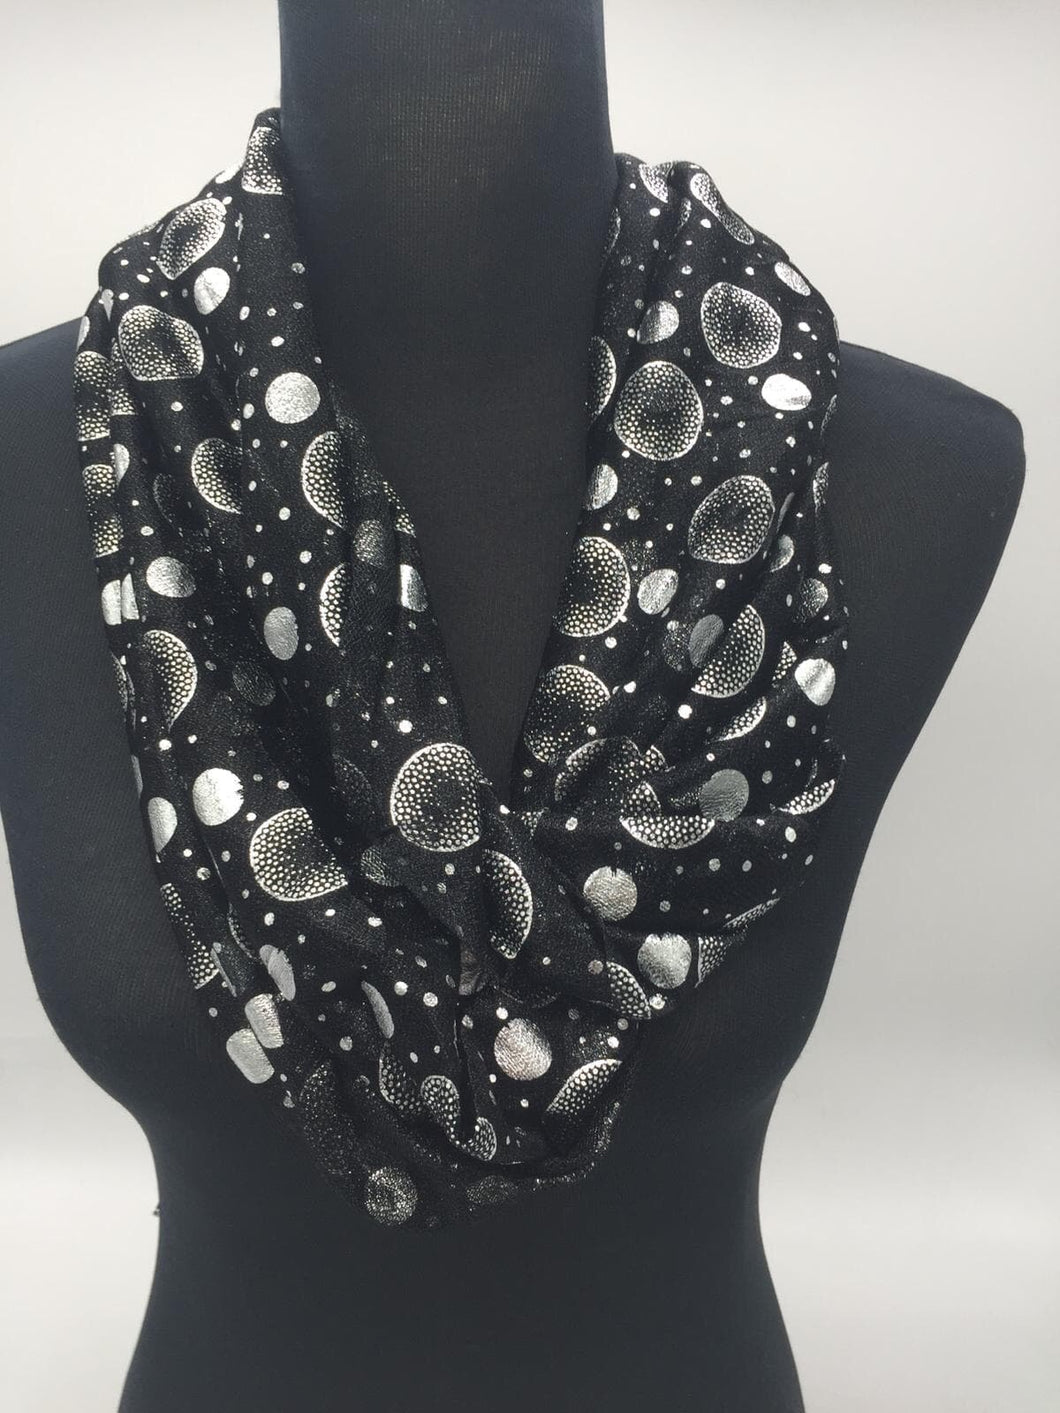 Snood Style Scarf with Silver Sparkle Circles - Comes In 4 Colours